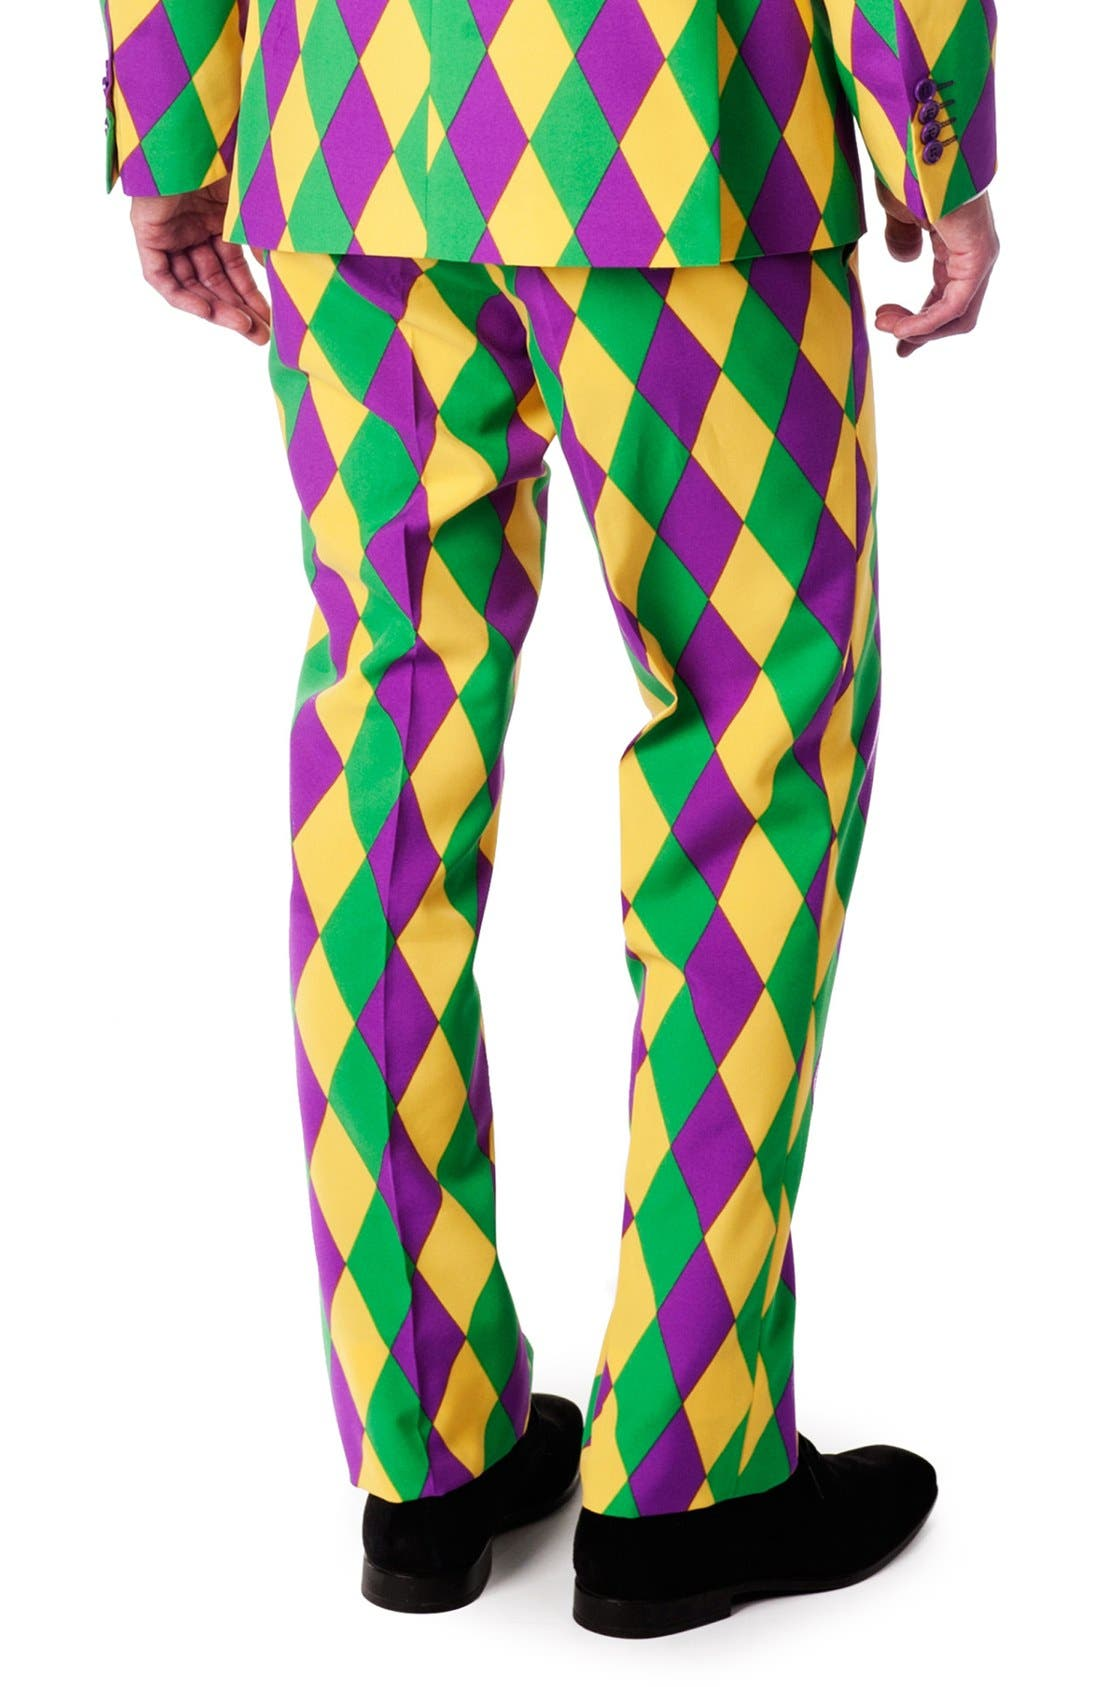 'Harleking' Trim Fit Suit with Tie,                             Alternate thumbnail 3, color,                             Green/ Purple/ Yellow